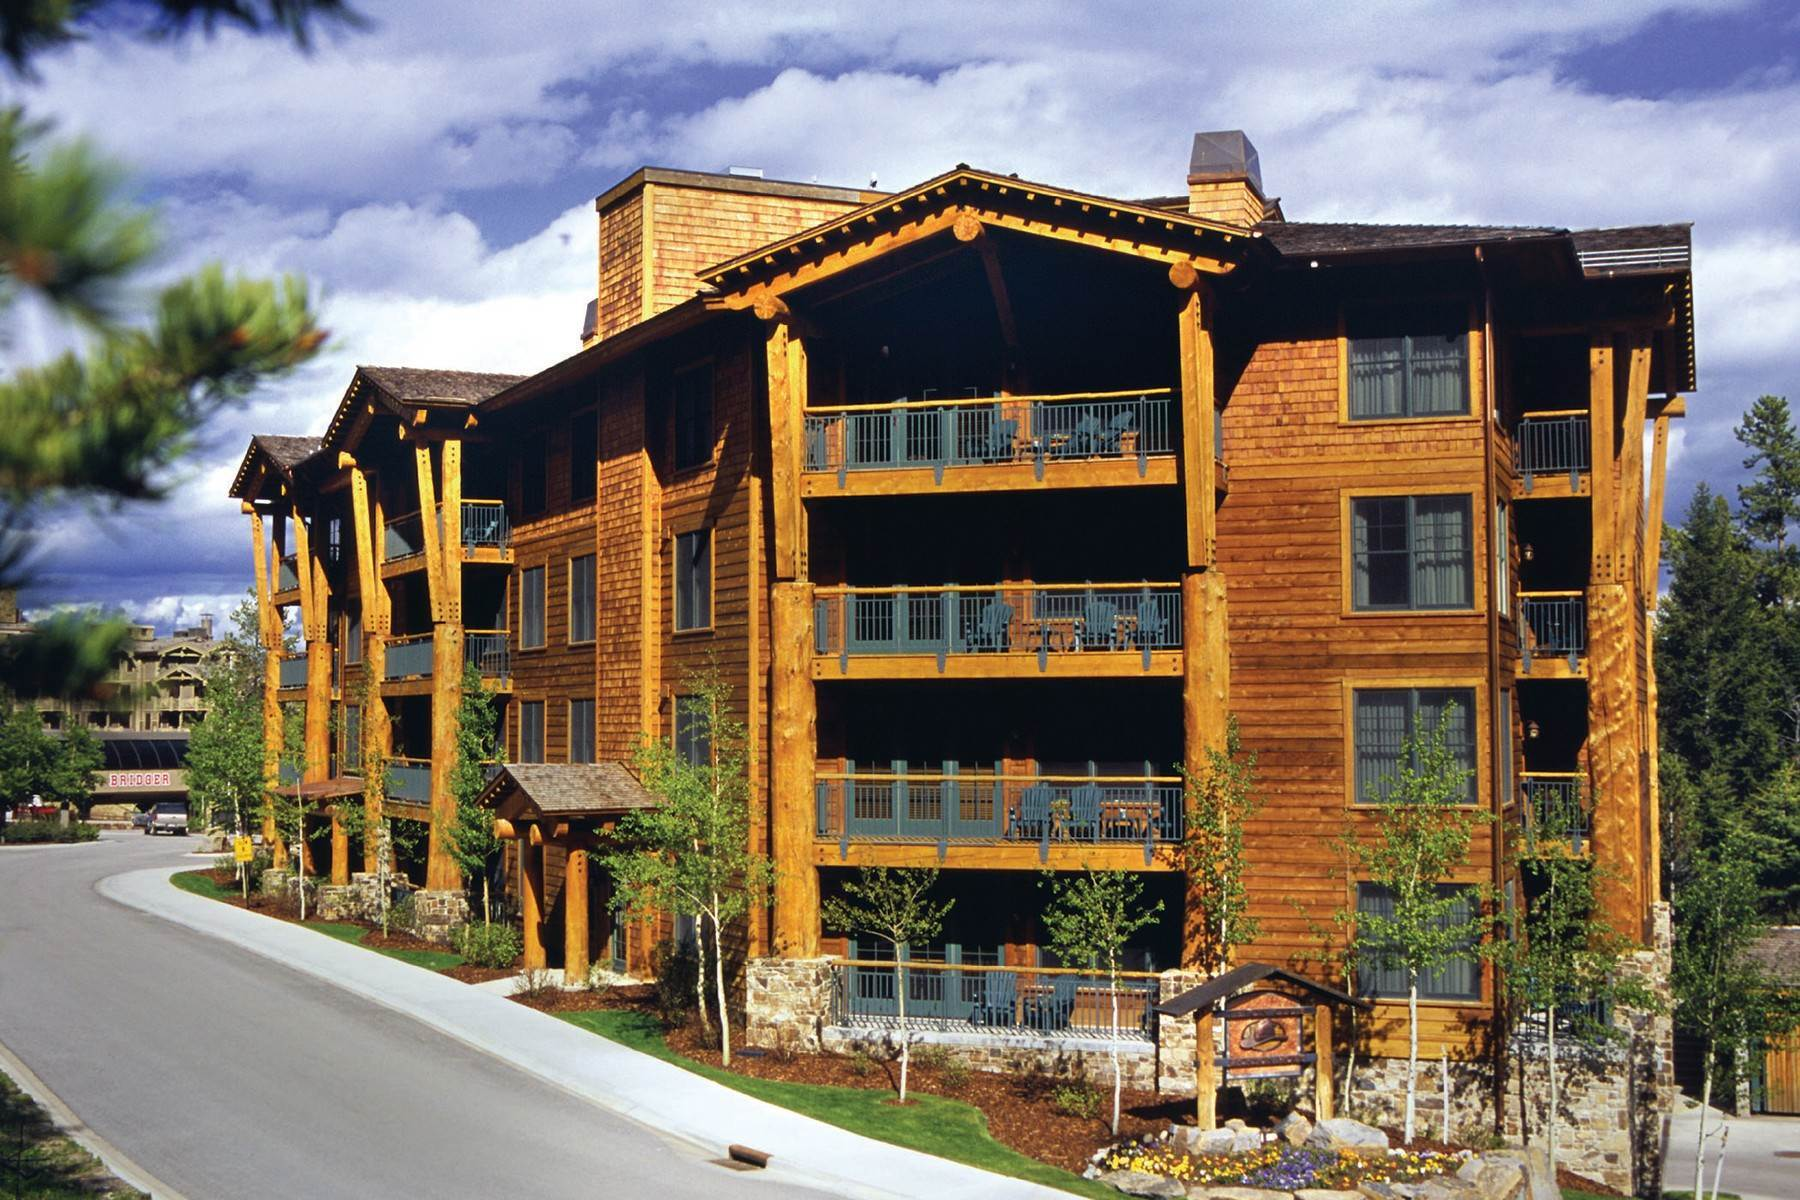 2. fractional ownership prop for Sale at 3340 W Cody Ln, #211 Teton Village, Wyoming 83025 United States